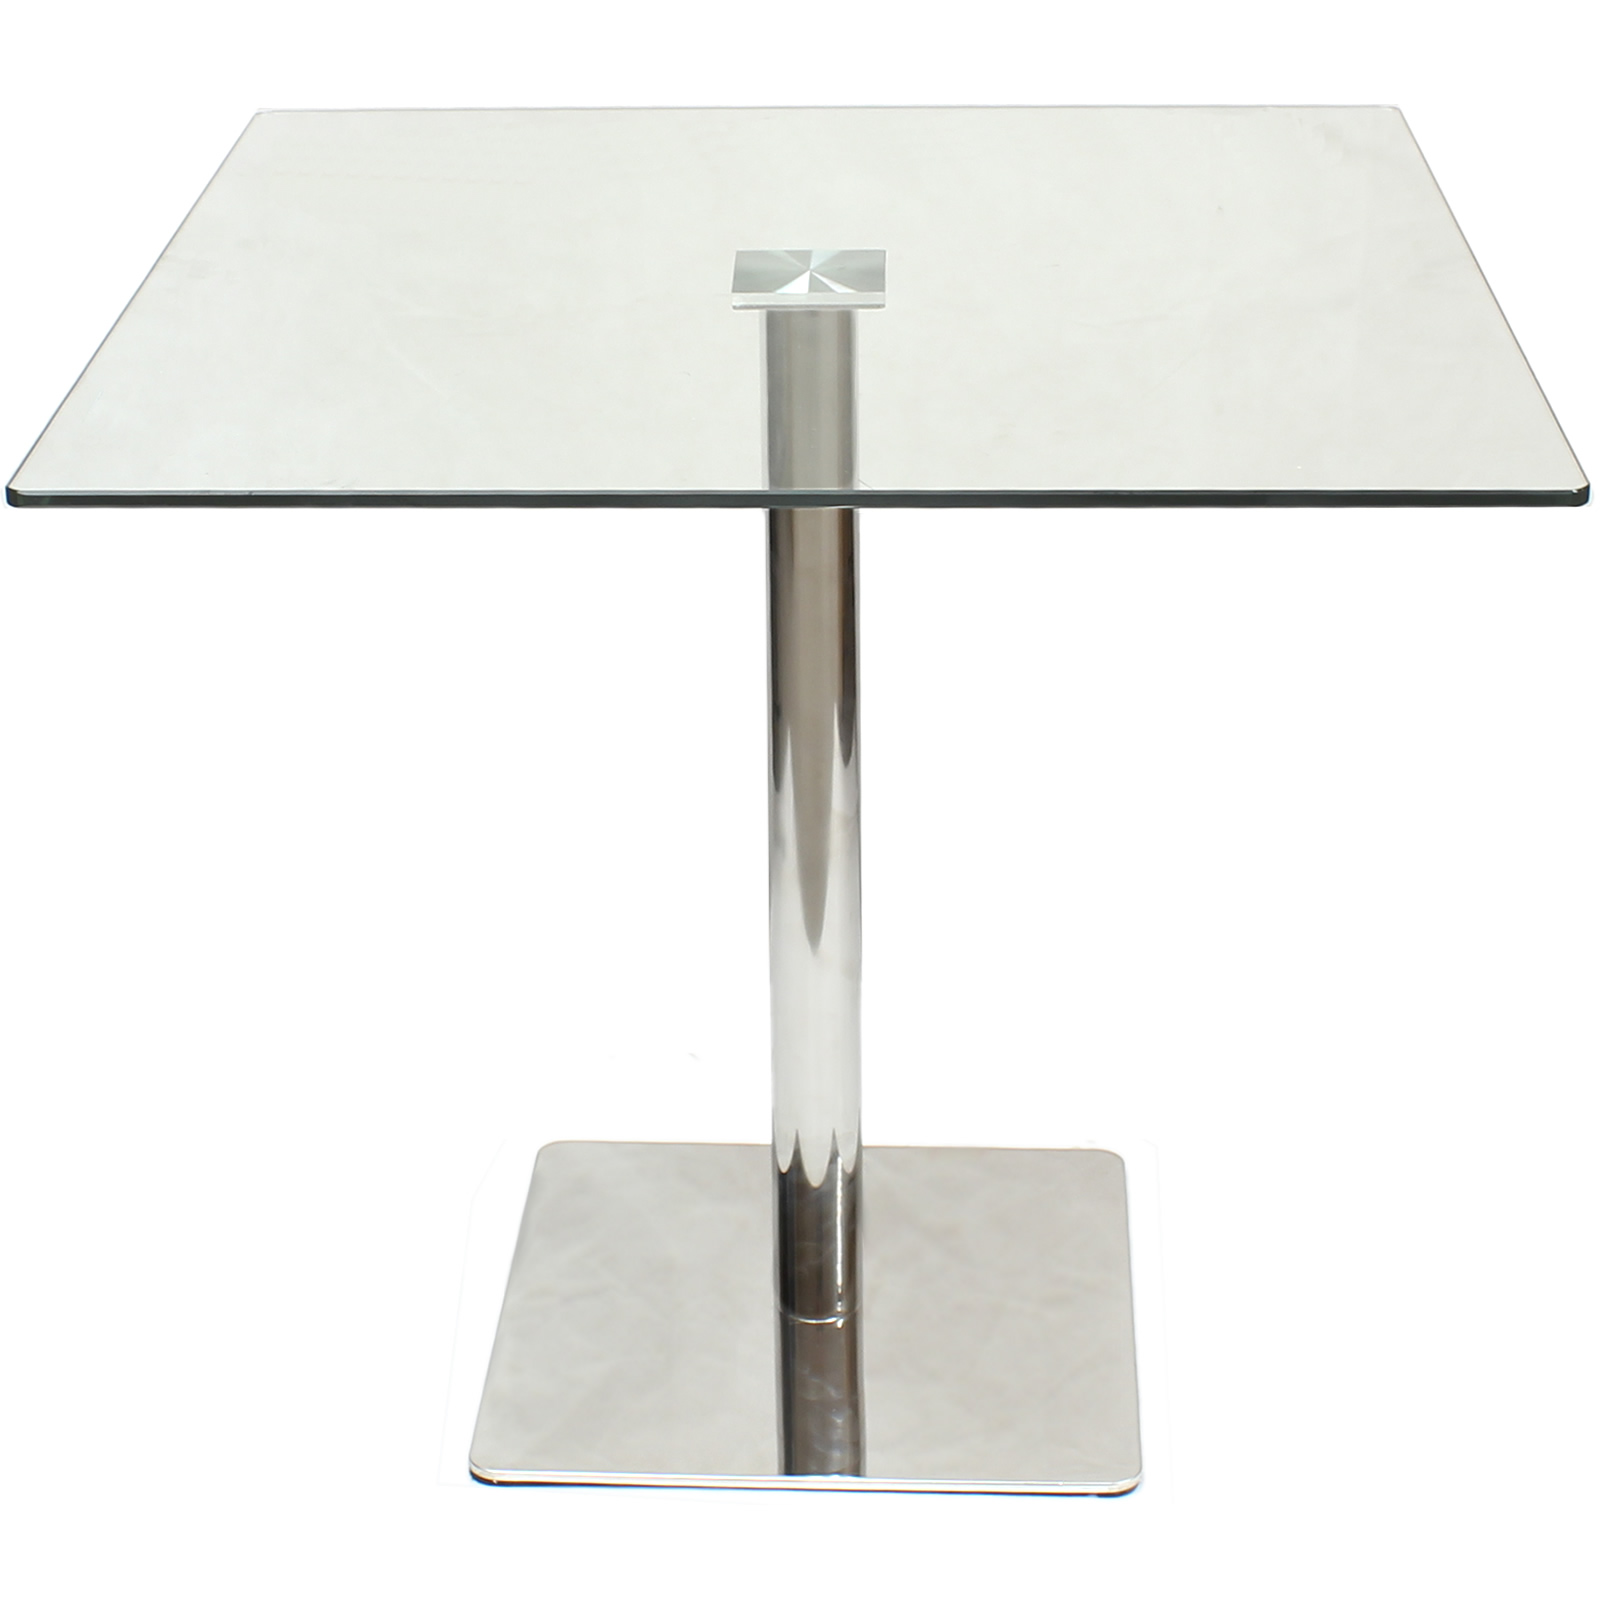 Sale large square clear glass dining table breakfast for Square glass dining table